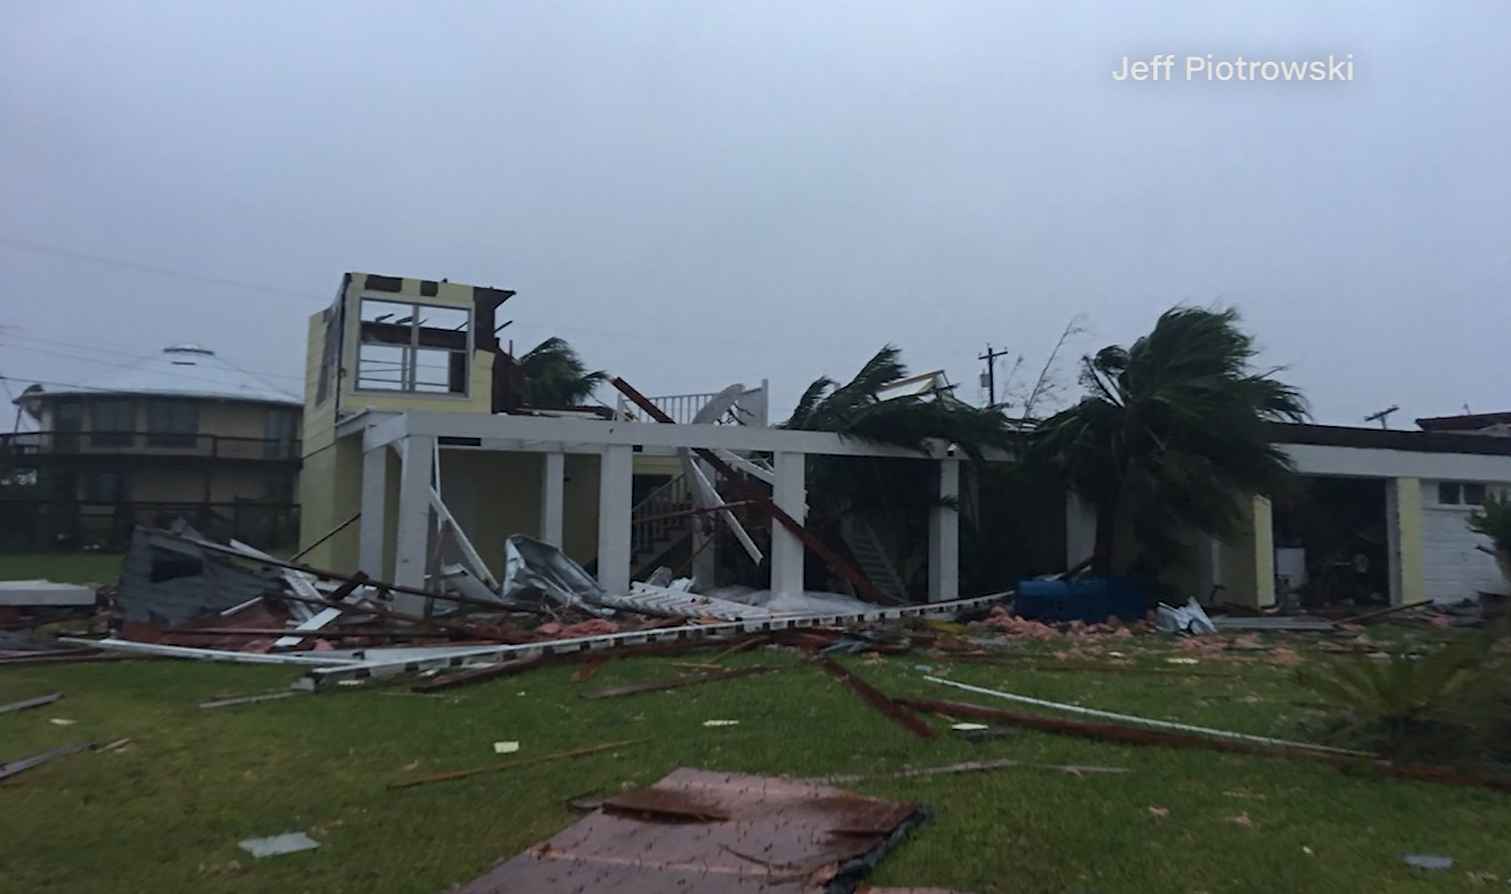 Severe damage in Rockport (Jeff Piotrowski / CNN)